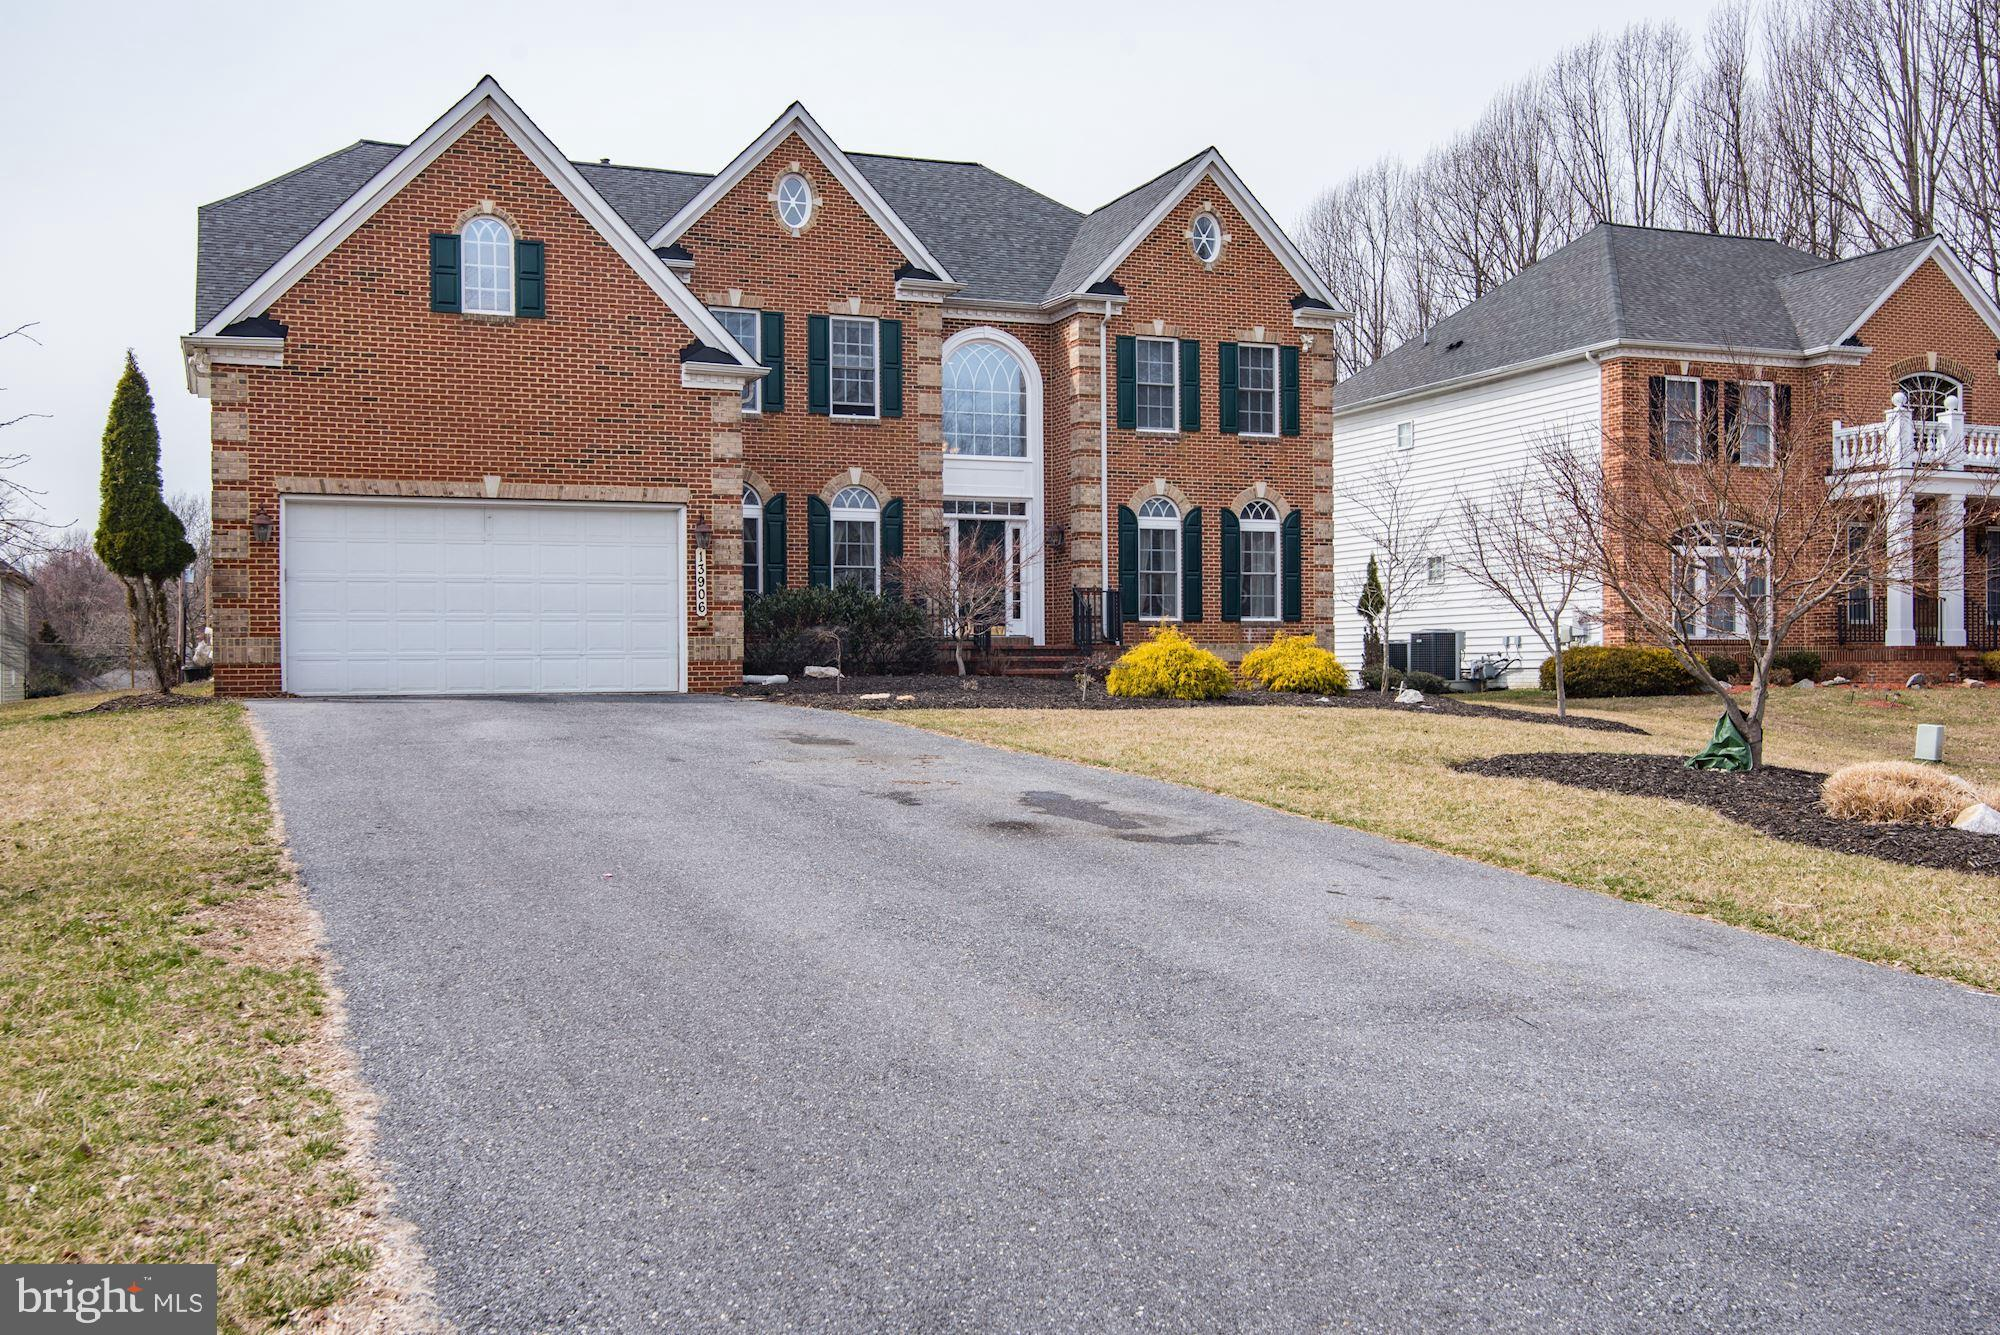 13906 ATWOOD KNOLL COURT, SILVER SPRING, MD 20906